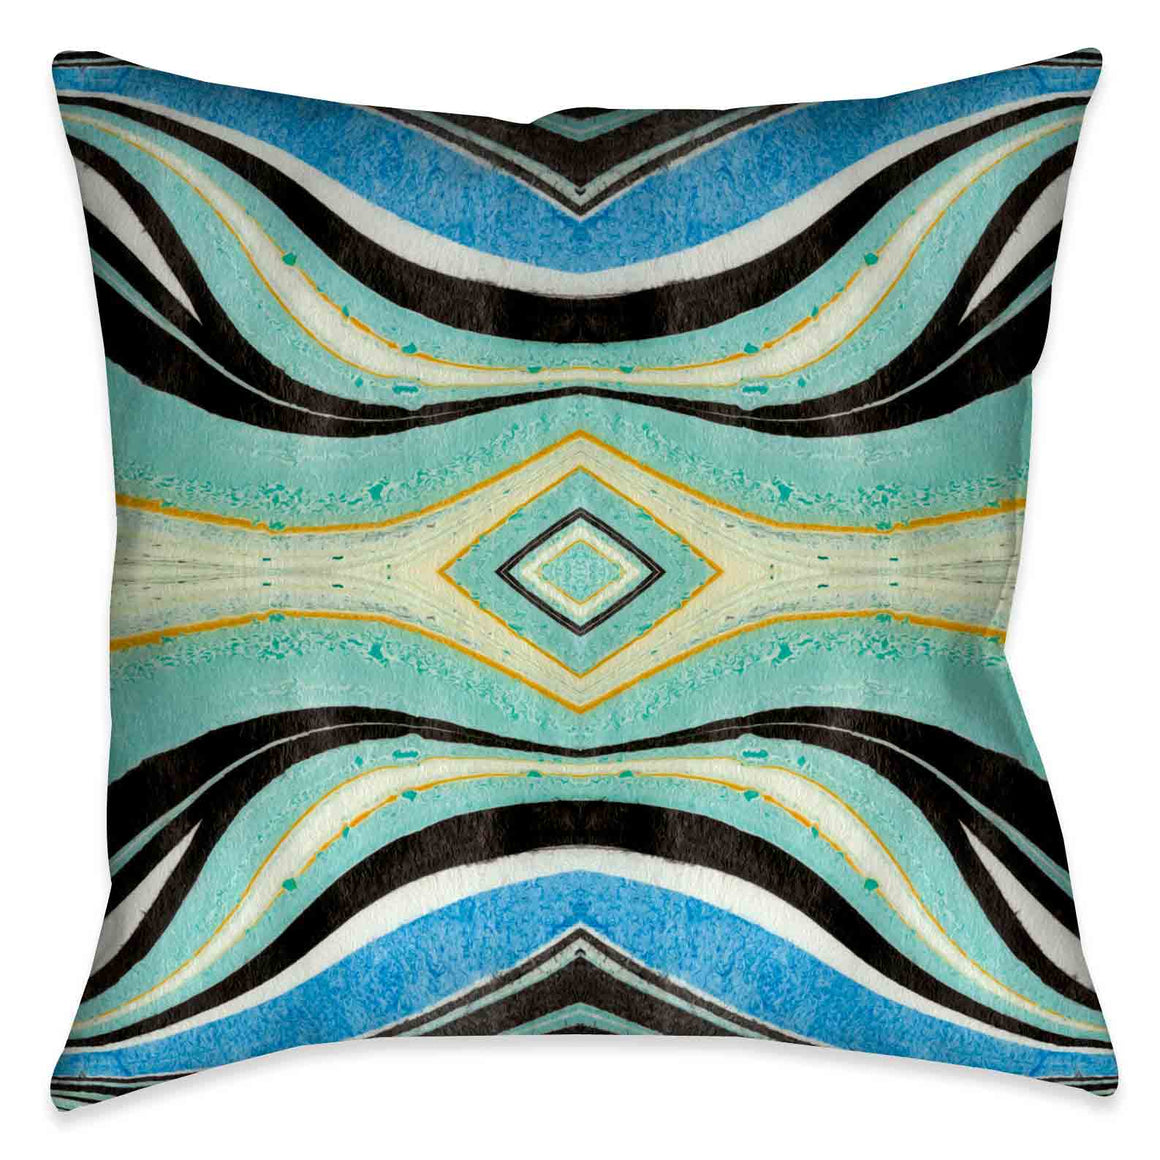 This abstract design evokes a unique artistic quality through fluid blues and turquoise colors. The accented pops of black and yellow lines and shapes in this outdoor decorative pillow, create movement that is sure to bring energy and liveliness to any space!